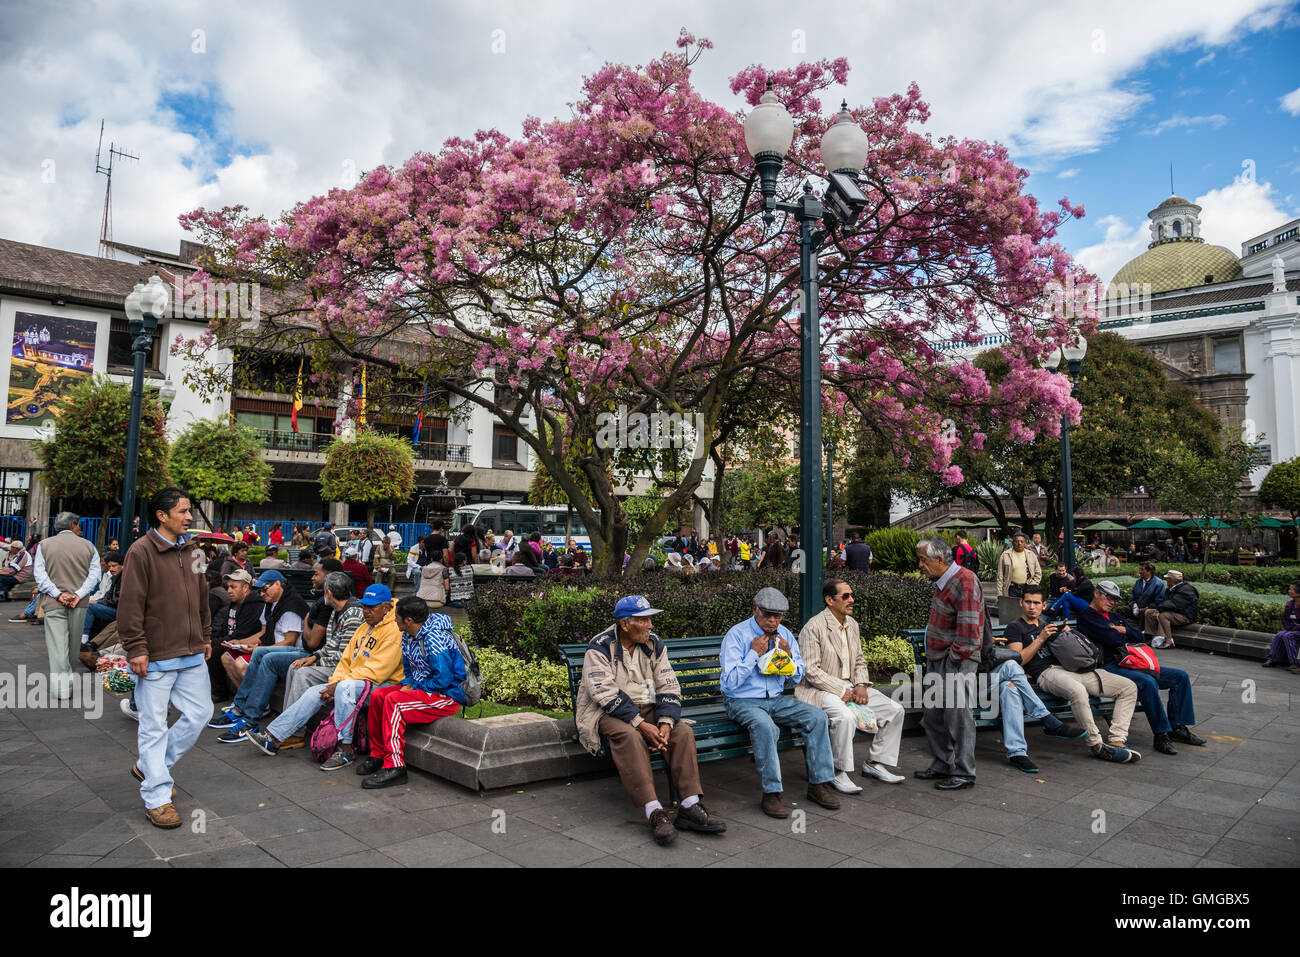 People of all ages gathering at the Independence Square in old city Quito, Ecuador. - Stock Image